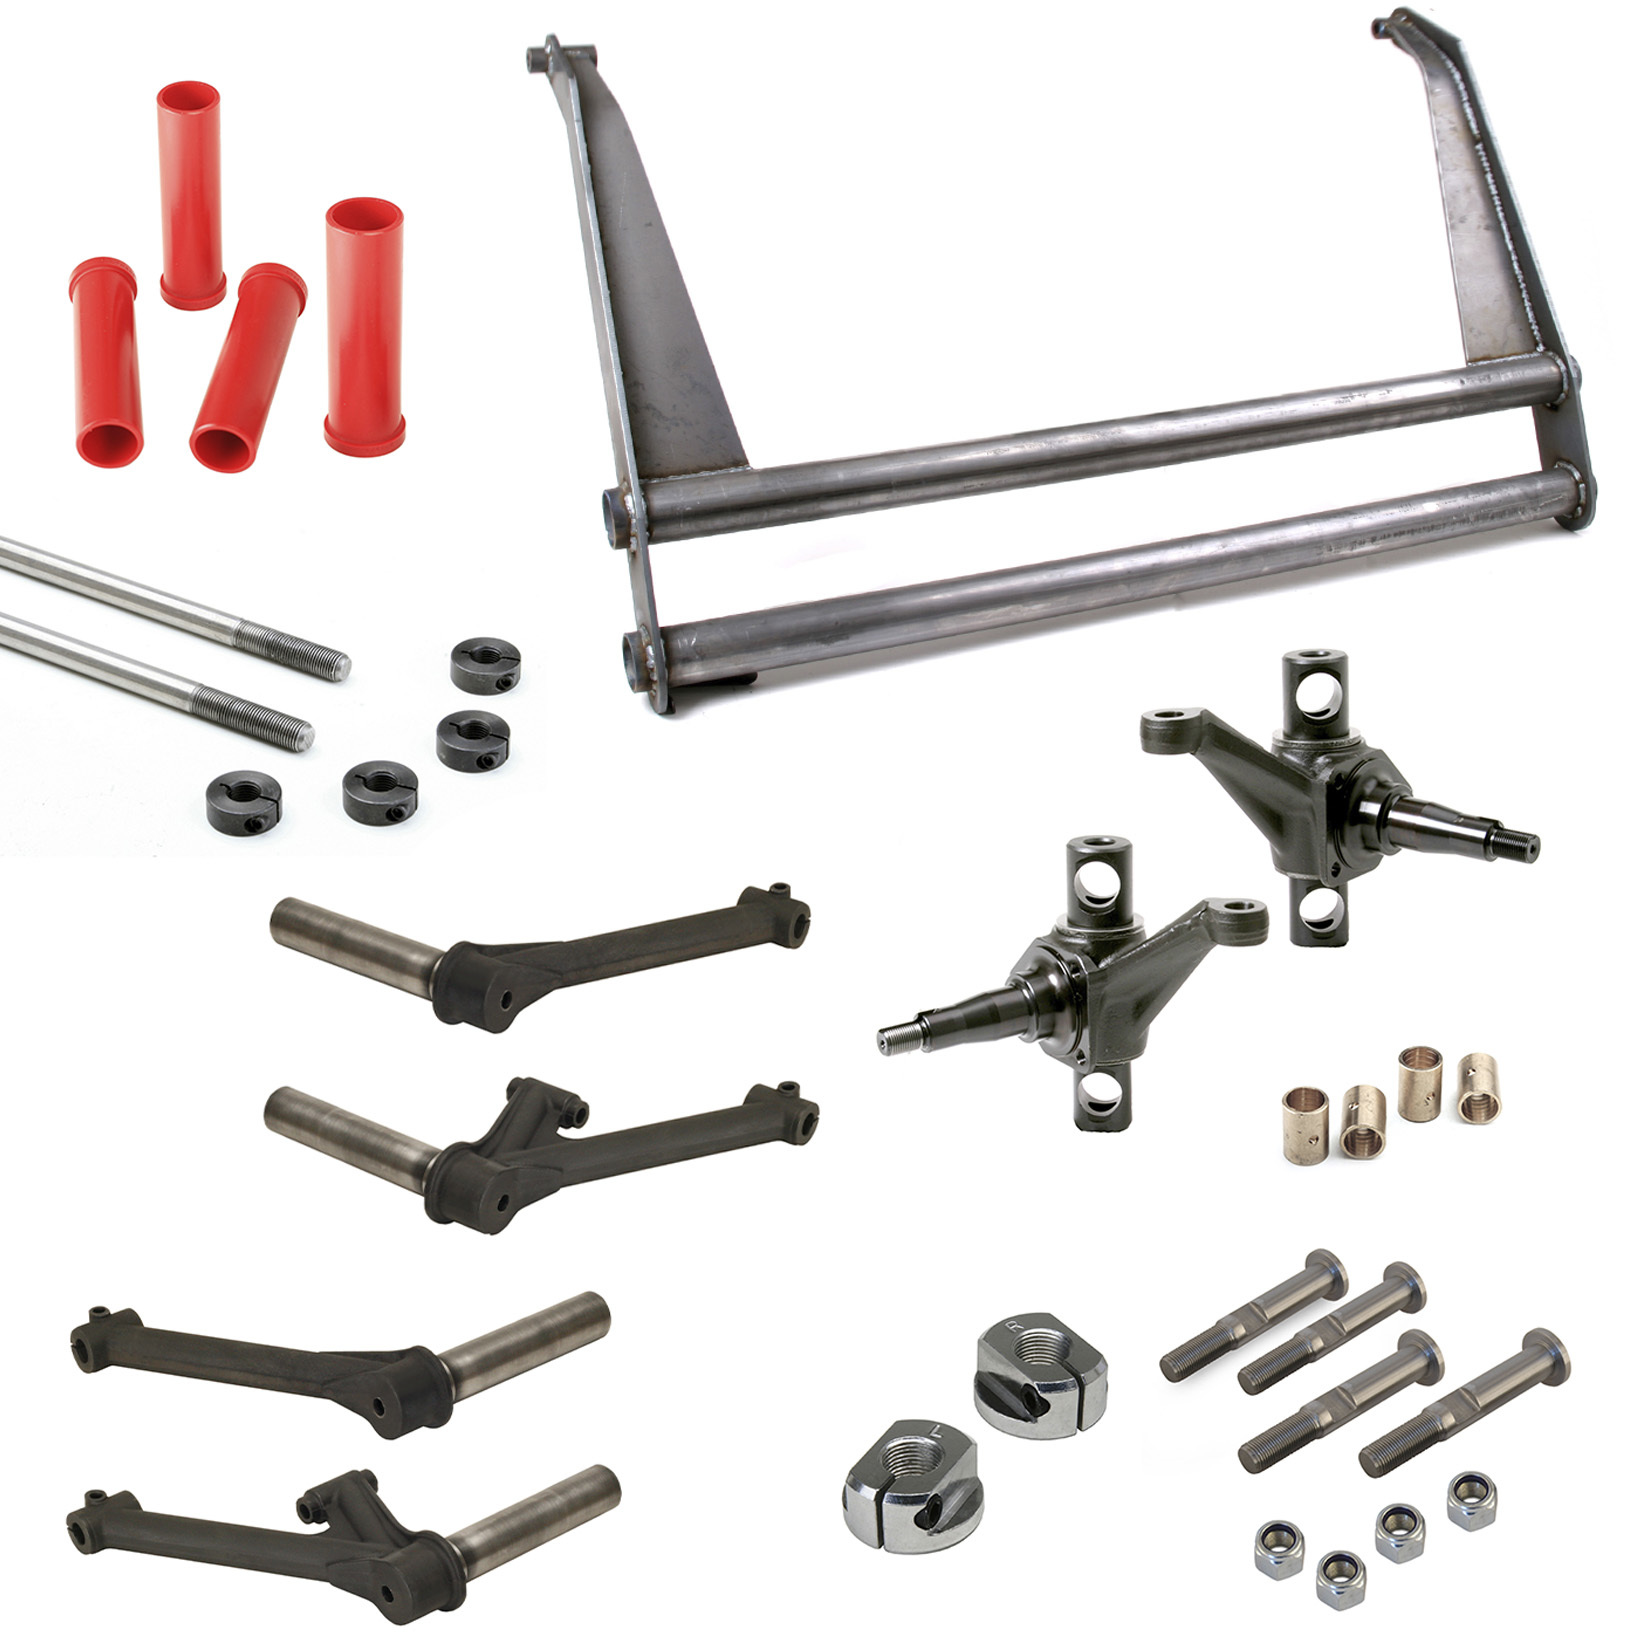 Vw Front Axle Beam Suspension Kits